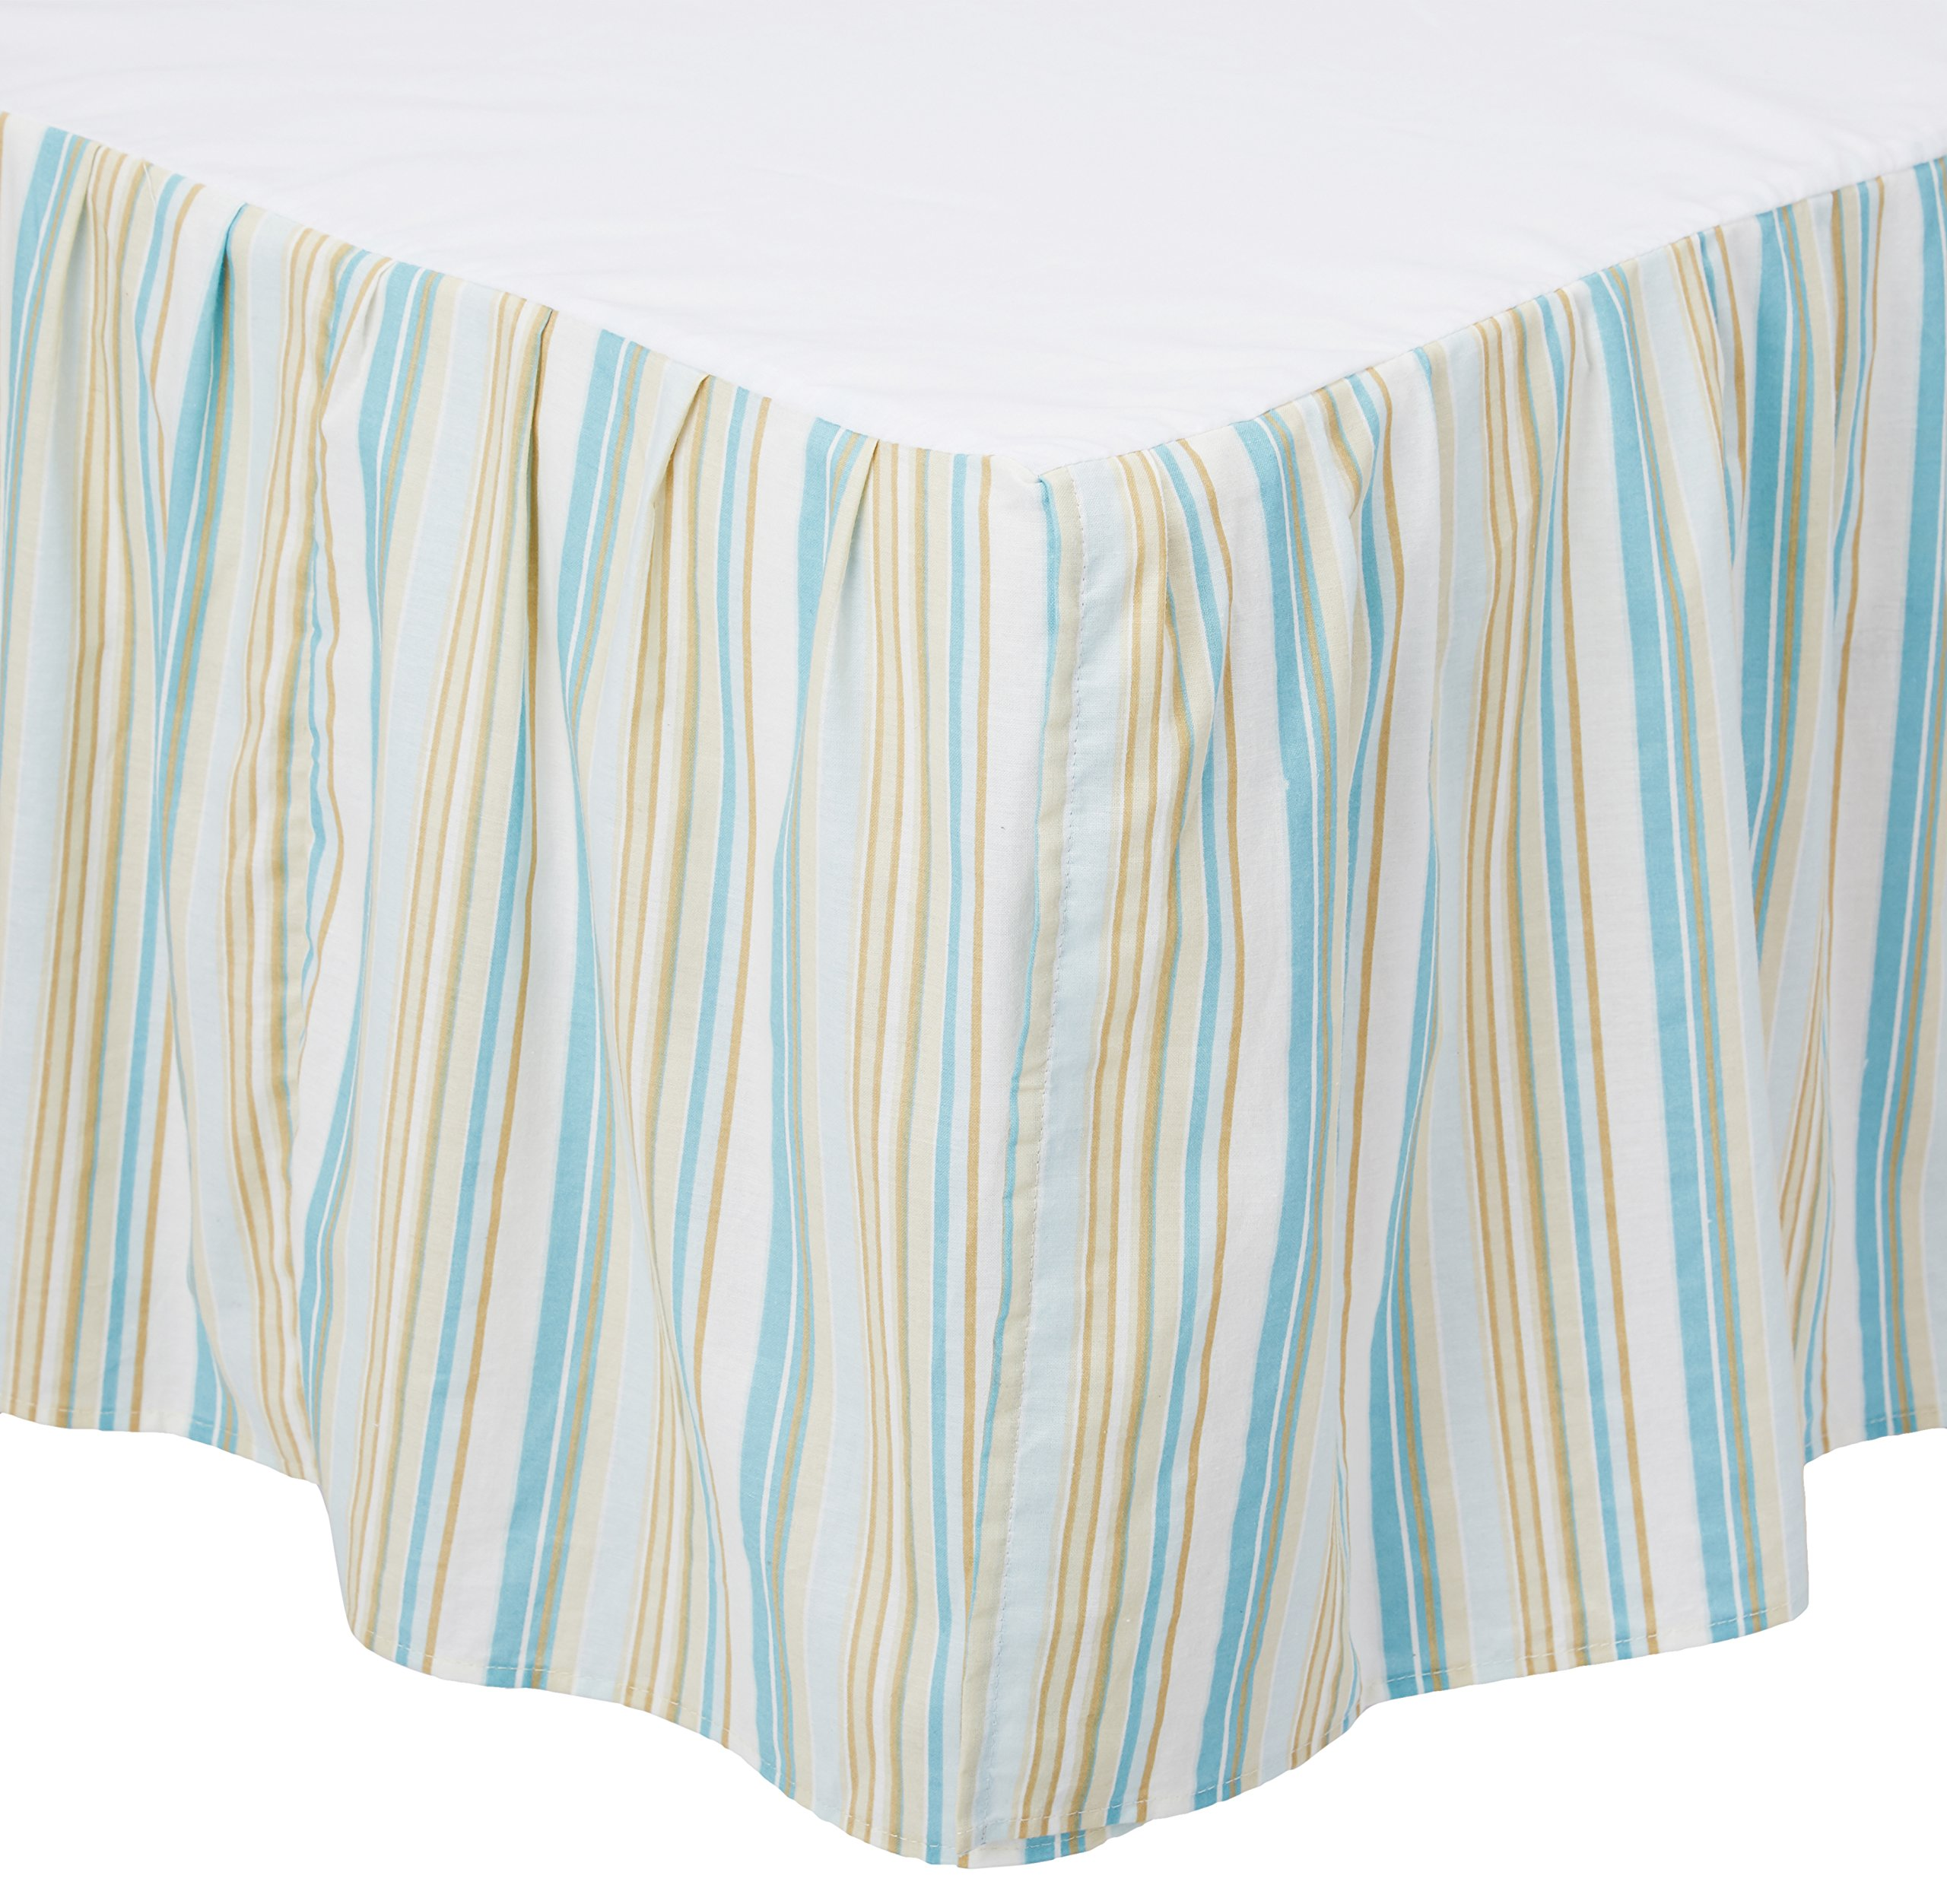 C&F Home 89452.6080 Natural Shells Bed Skirt, Queen, Blue